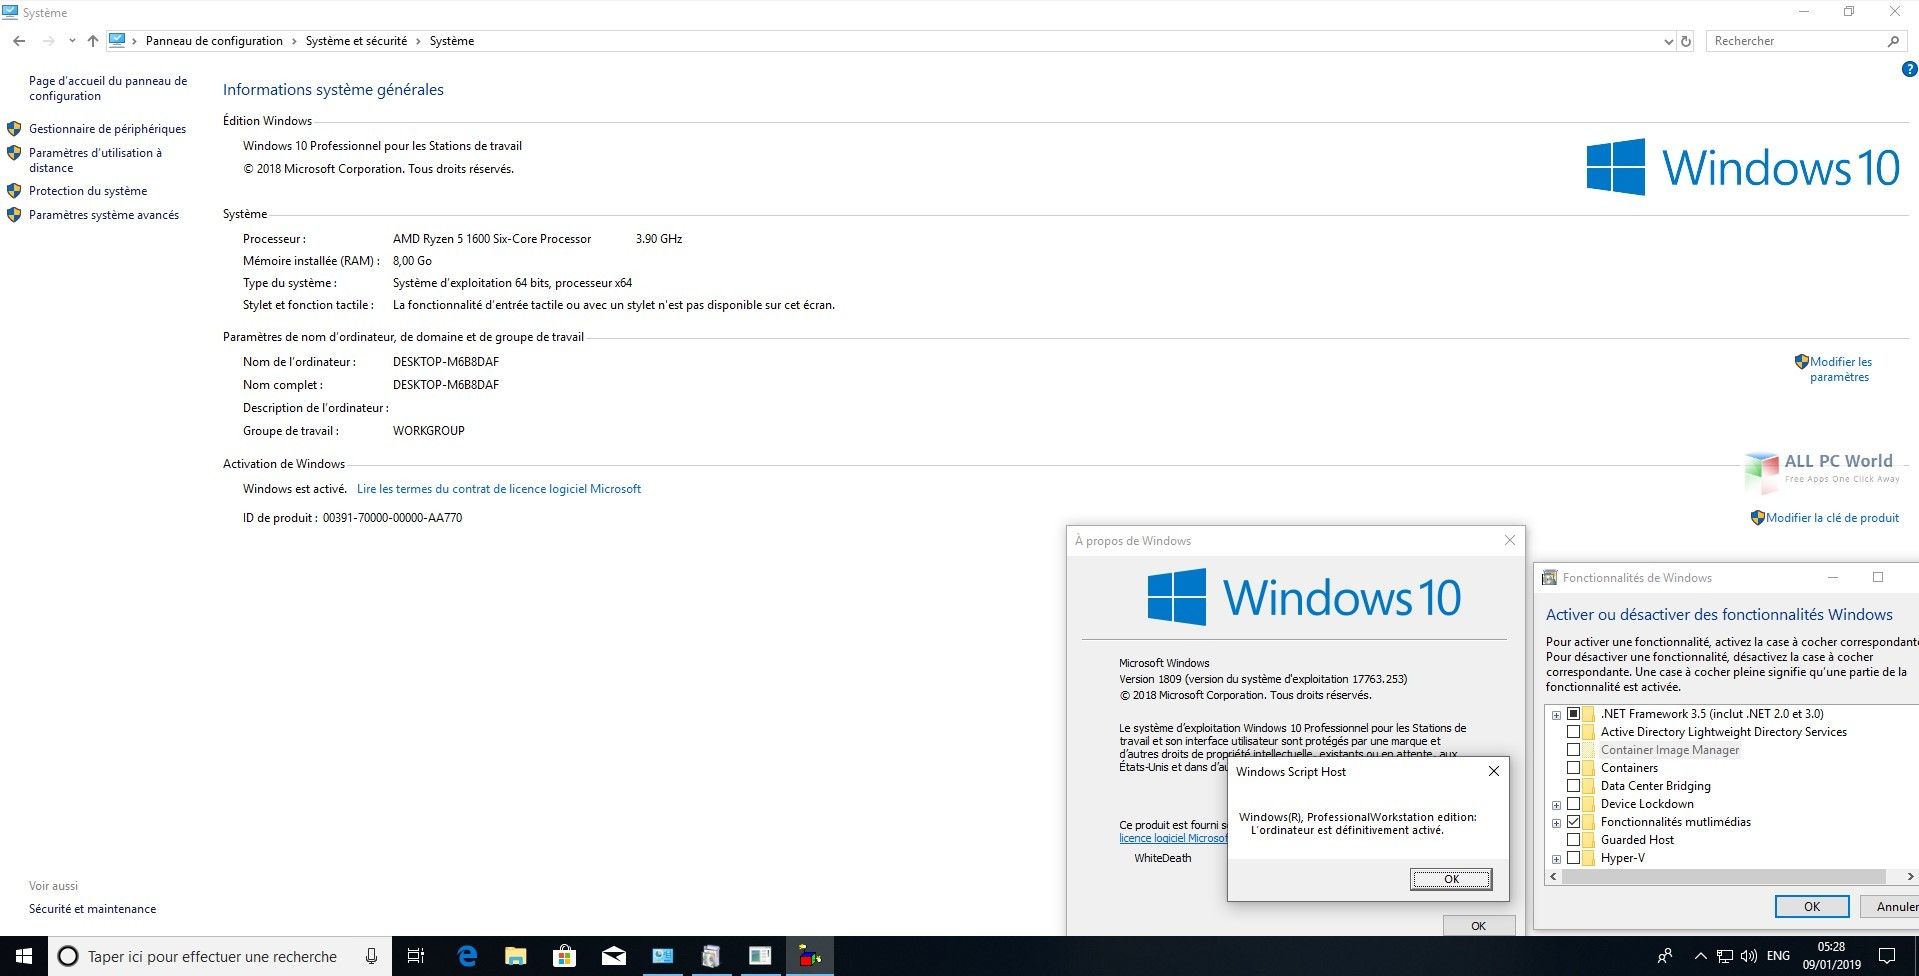 Windows 10 RS5 AIO with January 2019